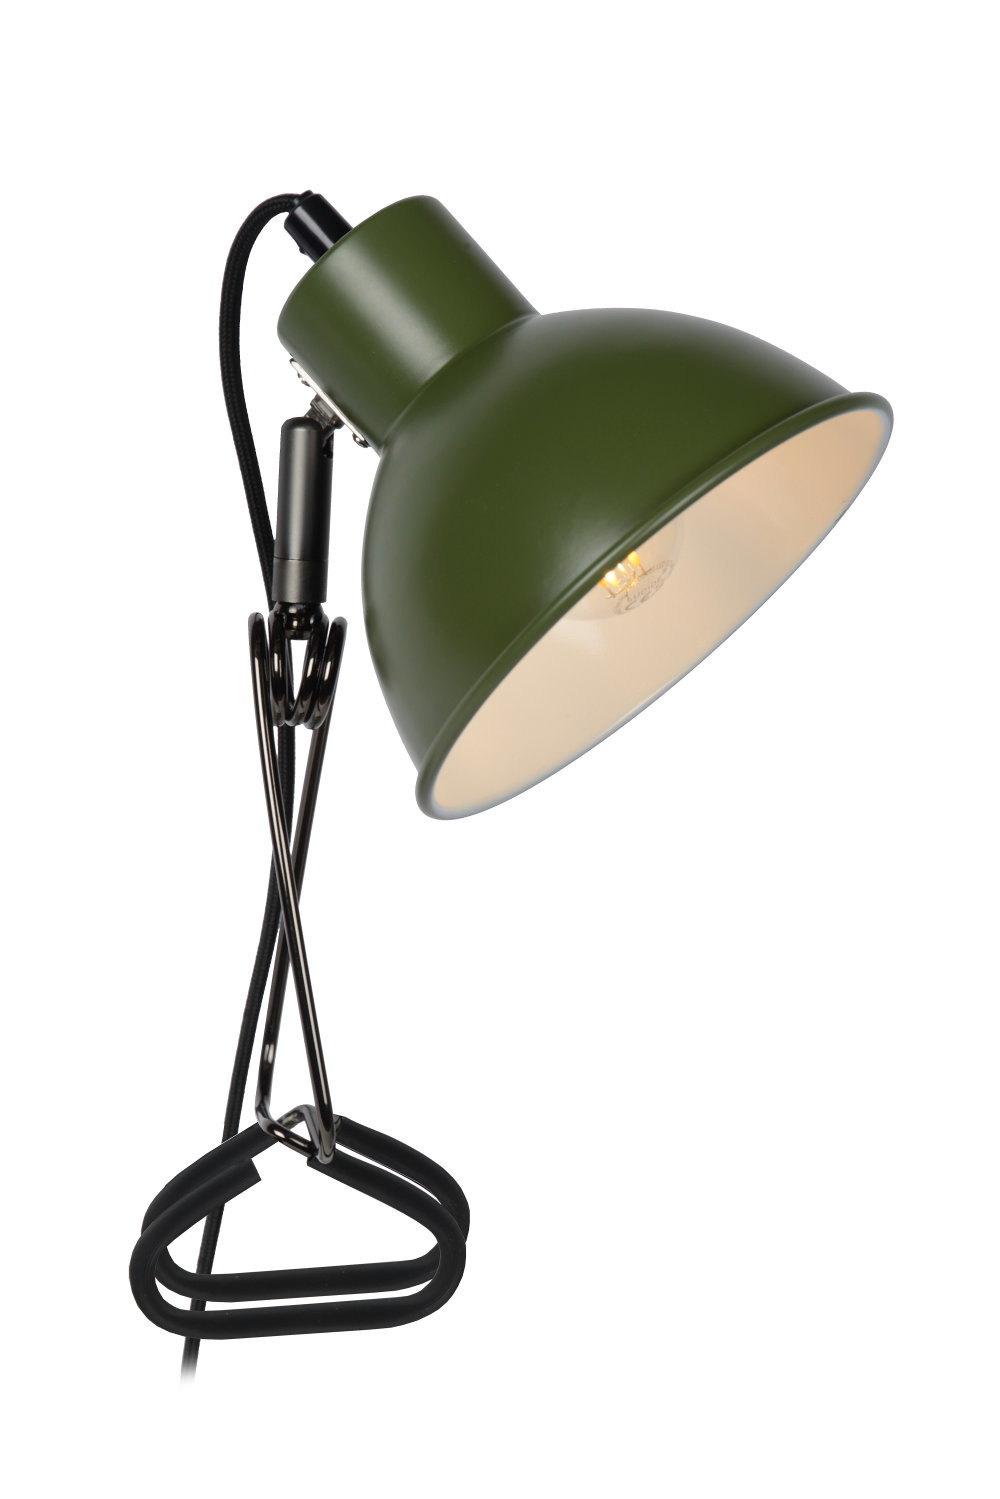 Lucide MOYS Klemlamp-Groen-1xE27-40W-Staal